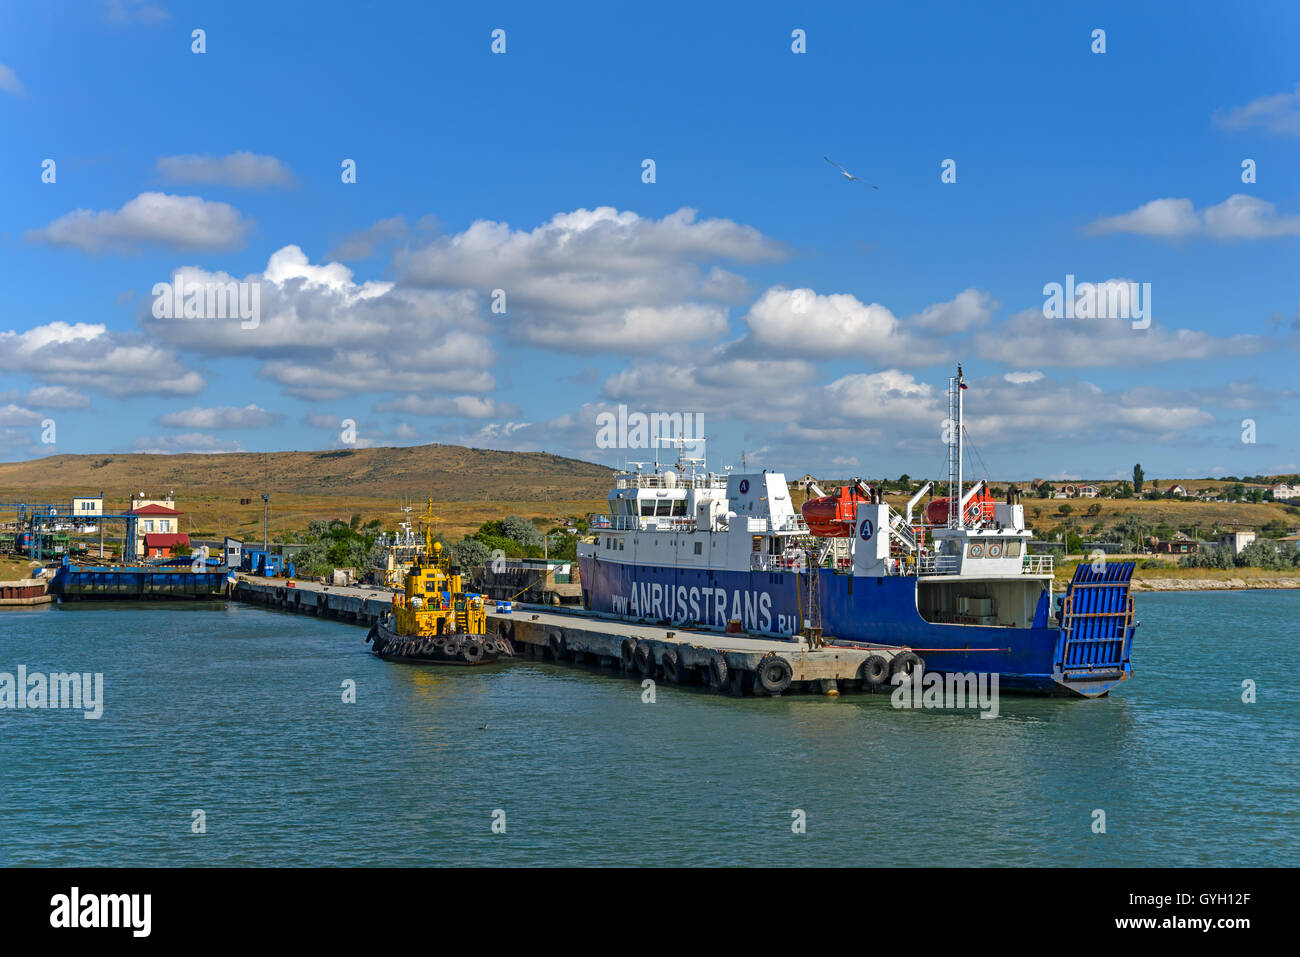 The port of Crimea with standing there by ferry and tugboat - Stock Image